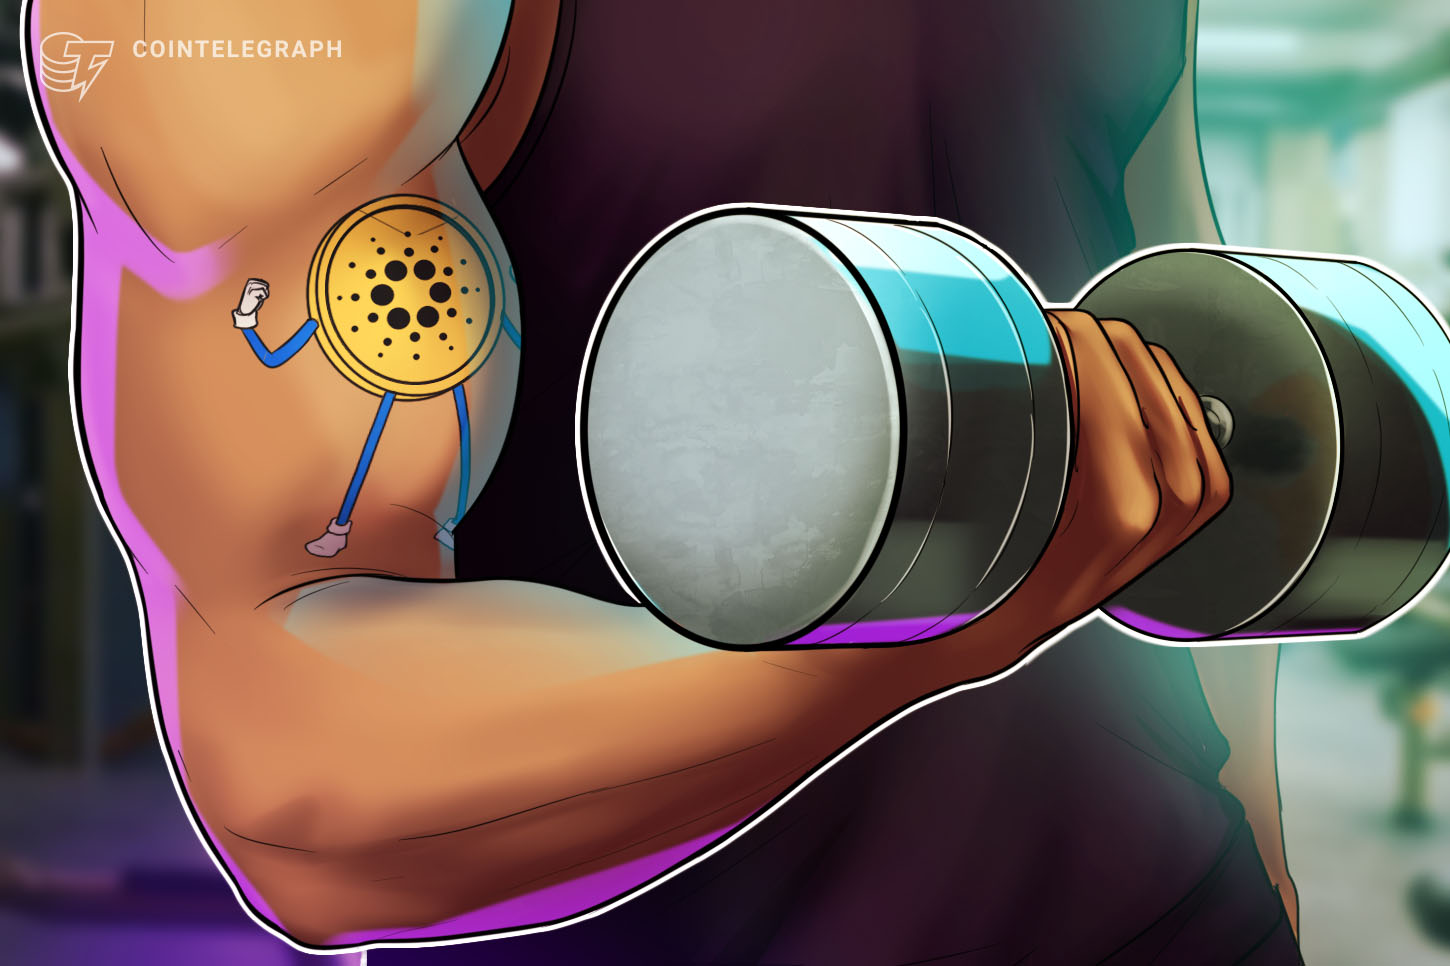 Cardano 'Dwarfs' Tezos After Shelley Hard Fork, Says Security Auditor